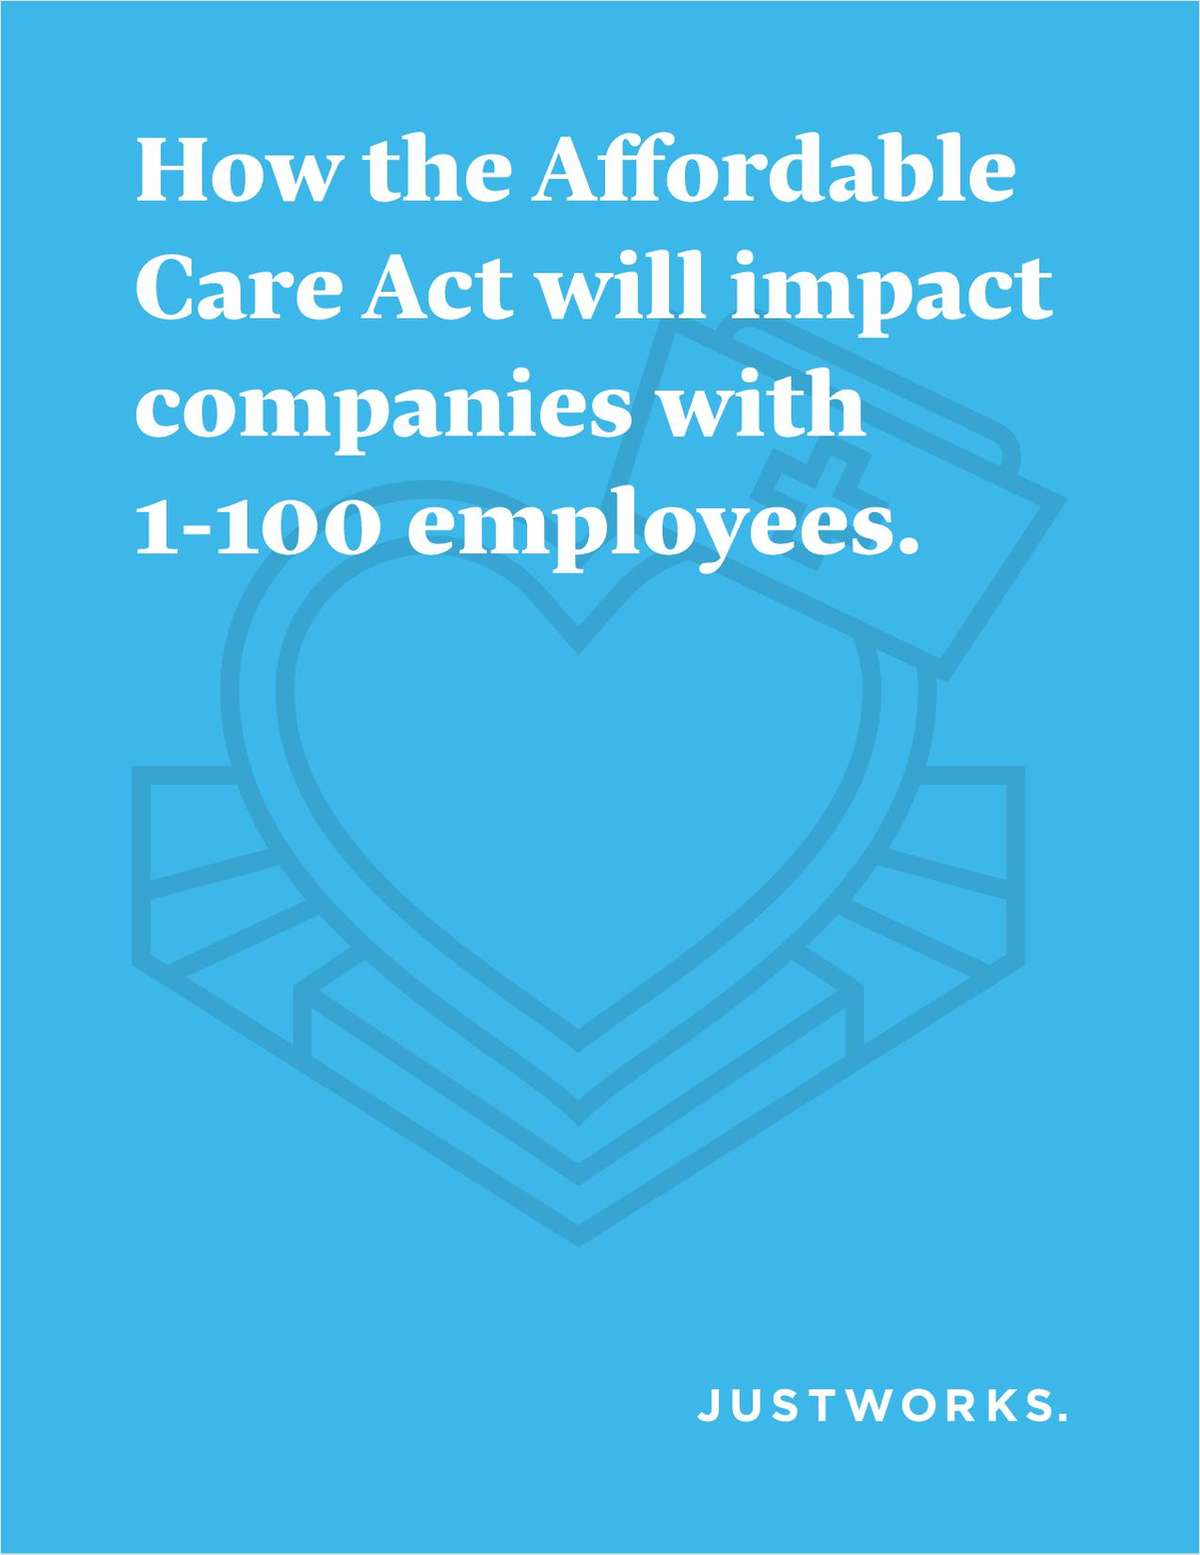 How the Affordable Care Act will impact companies with 1-100 employees.